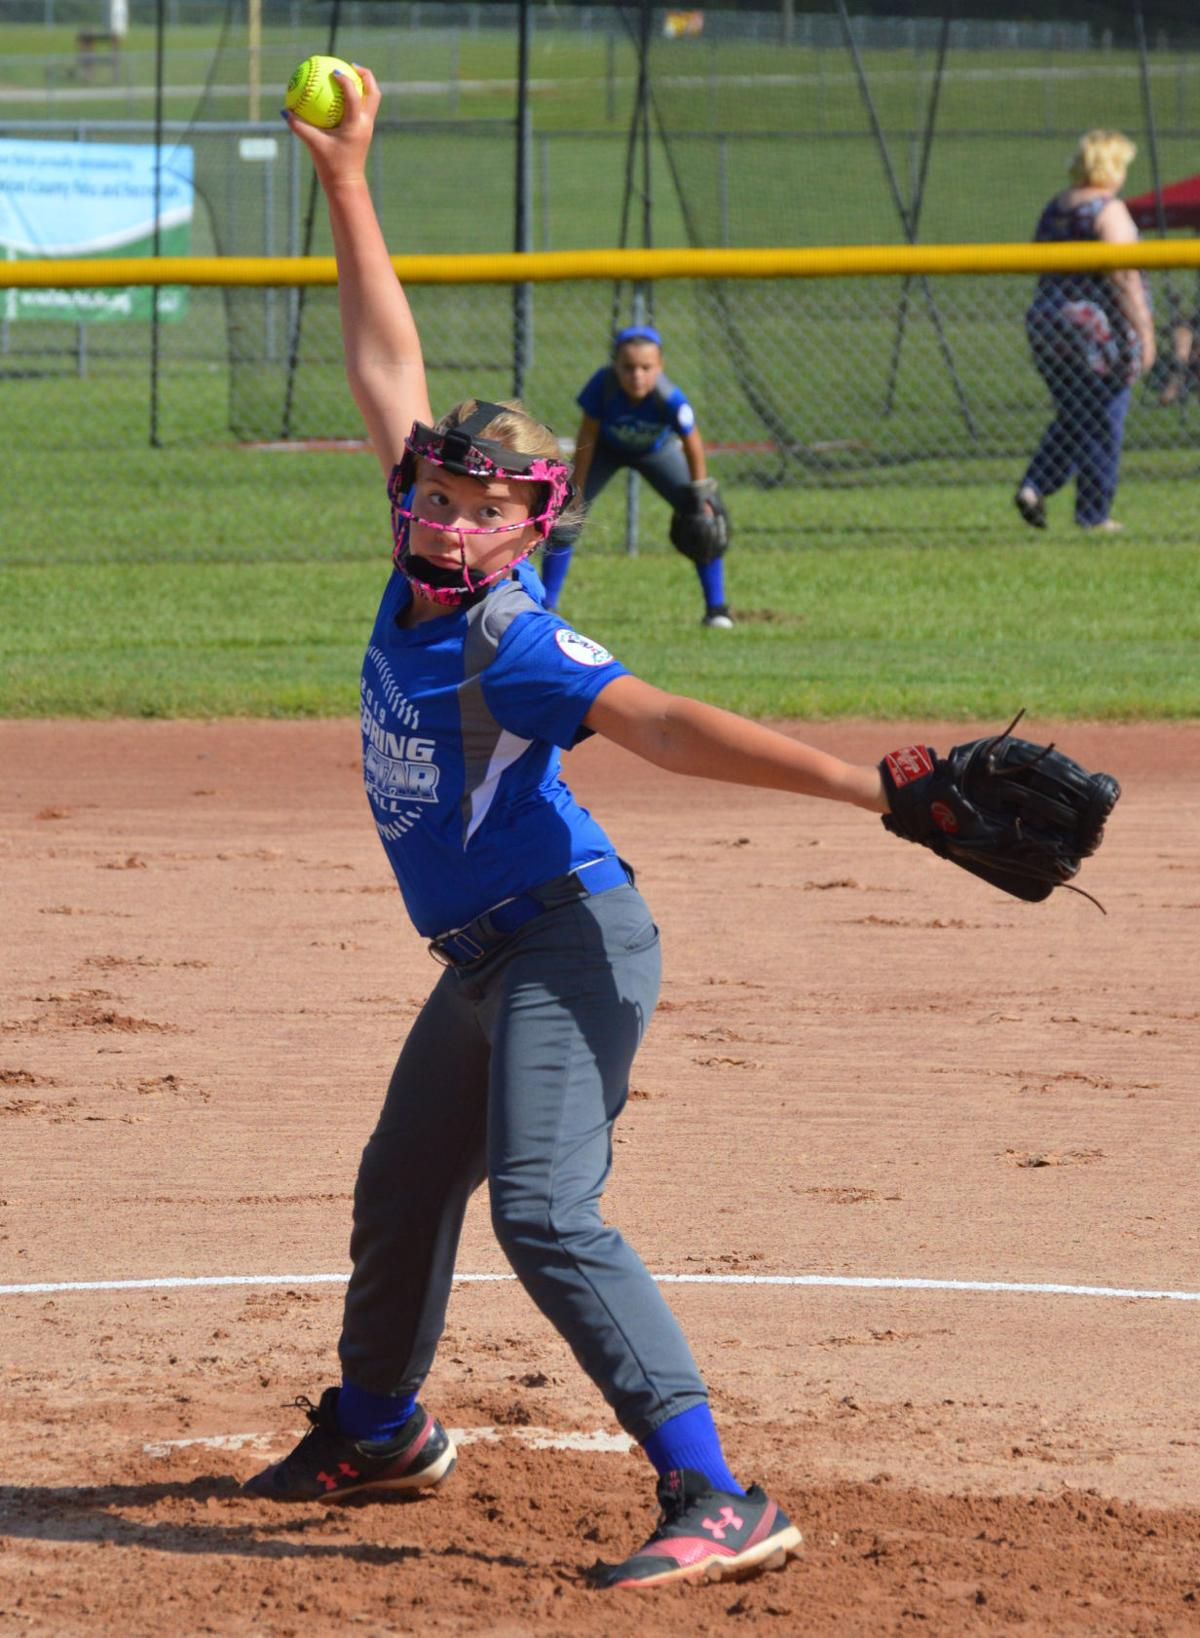 Gearing up for the World Series | Highlands News-Sun